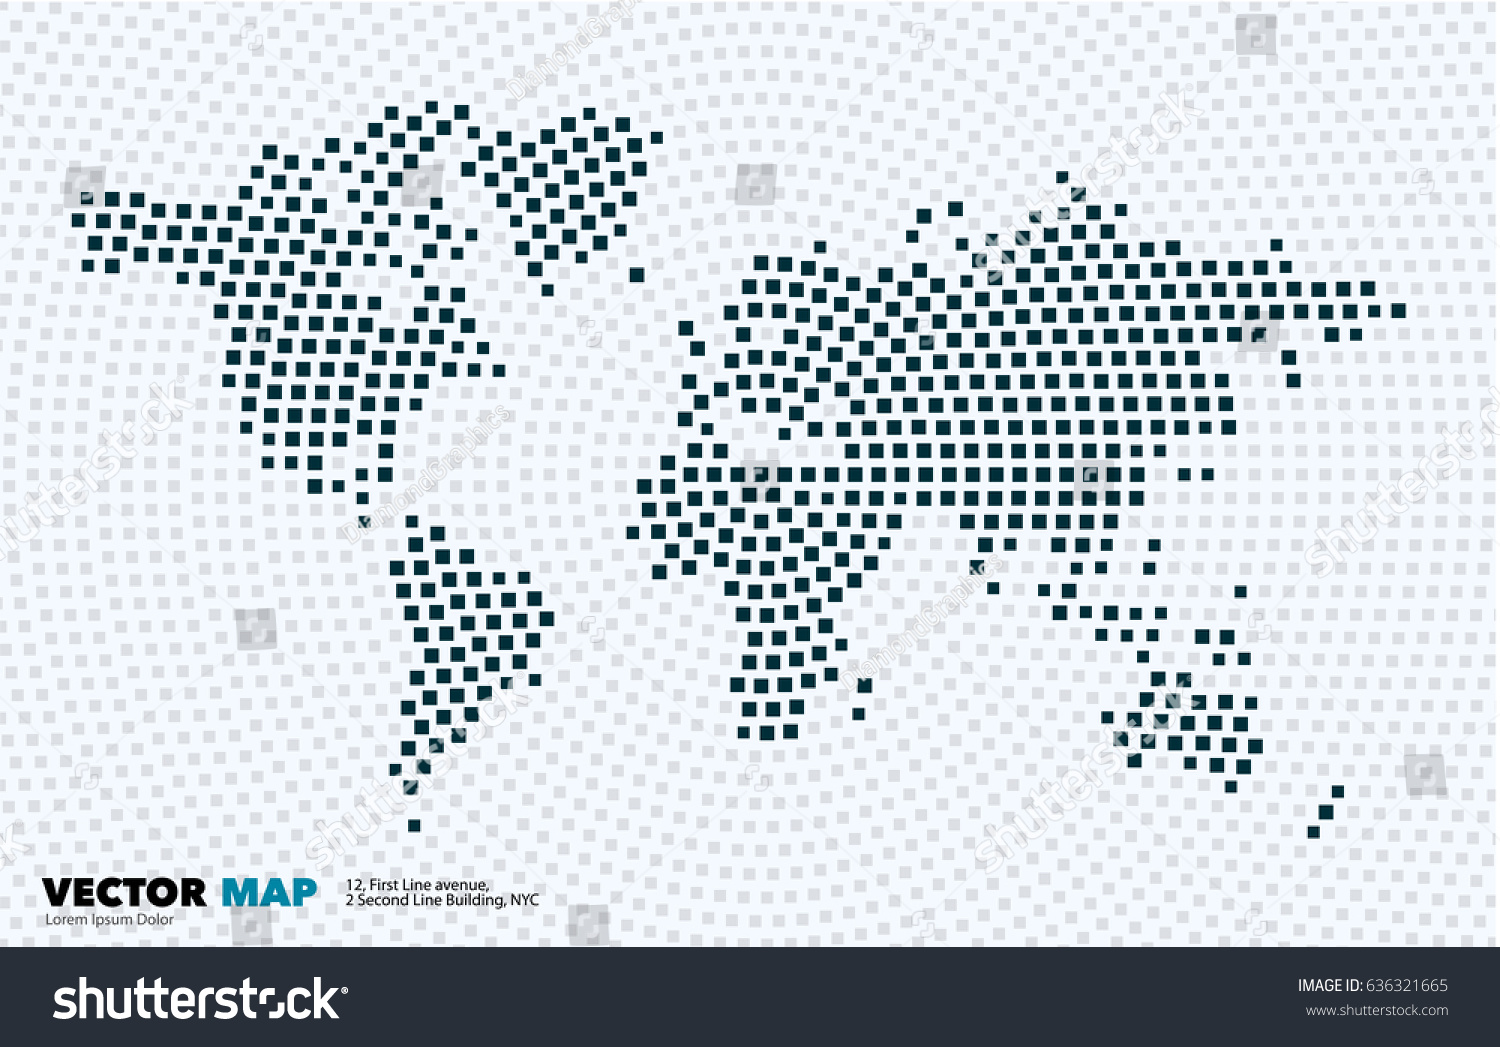 Vector world map template squares rectangles vector de vector world map template with squares rectangles for business graphic design abstract art for gumiabroncs Gallery